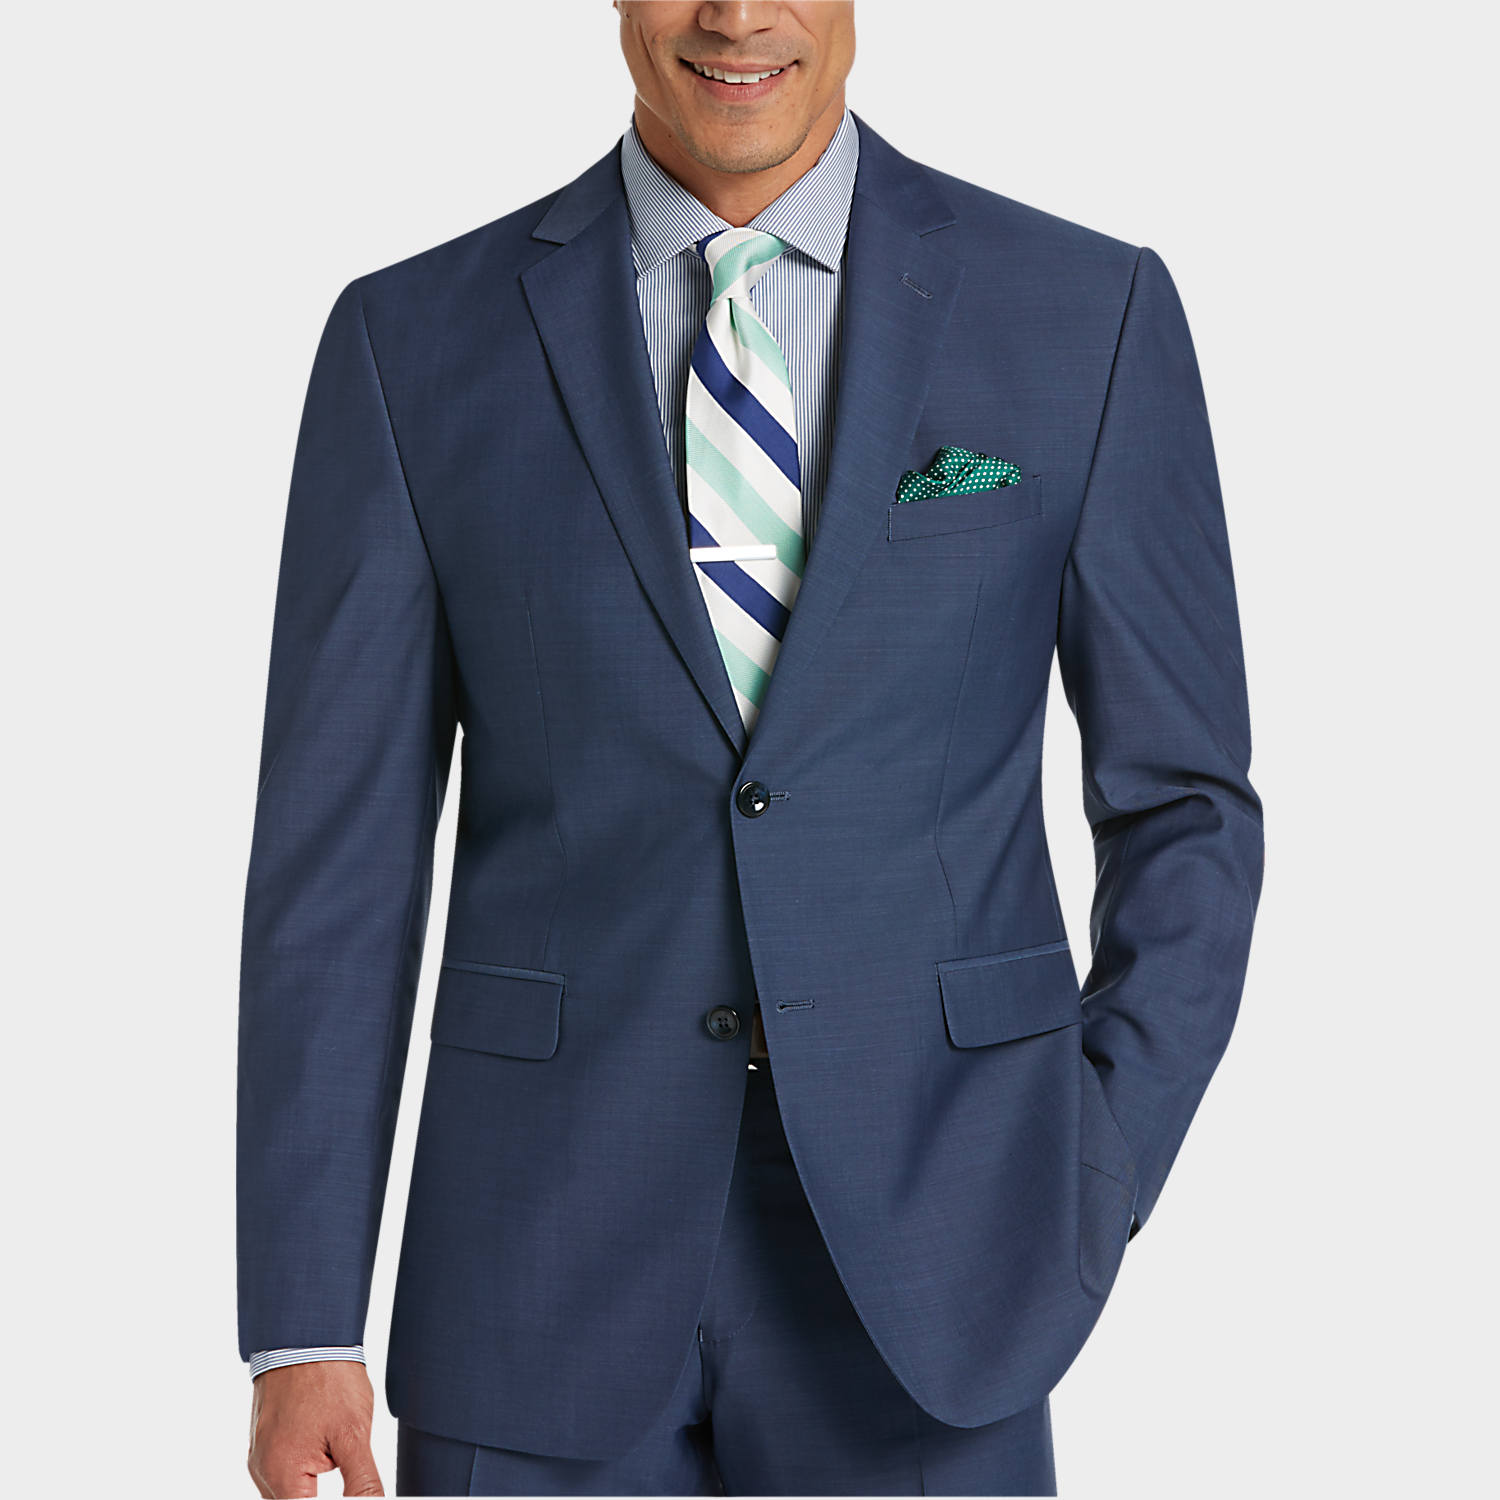 Perry Ellis Portfolio Blue Slim Fit Suit - Men's Slim Fit | Men's ...